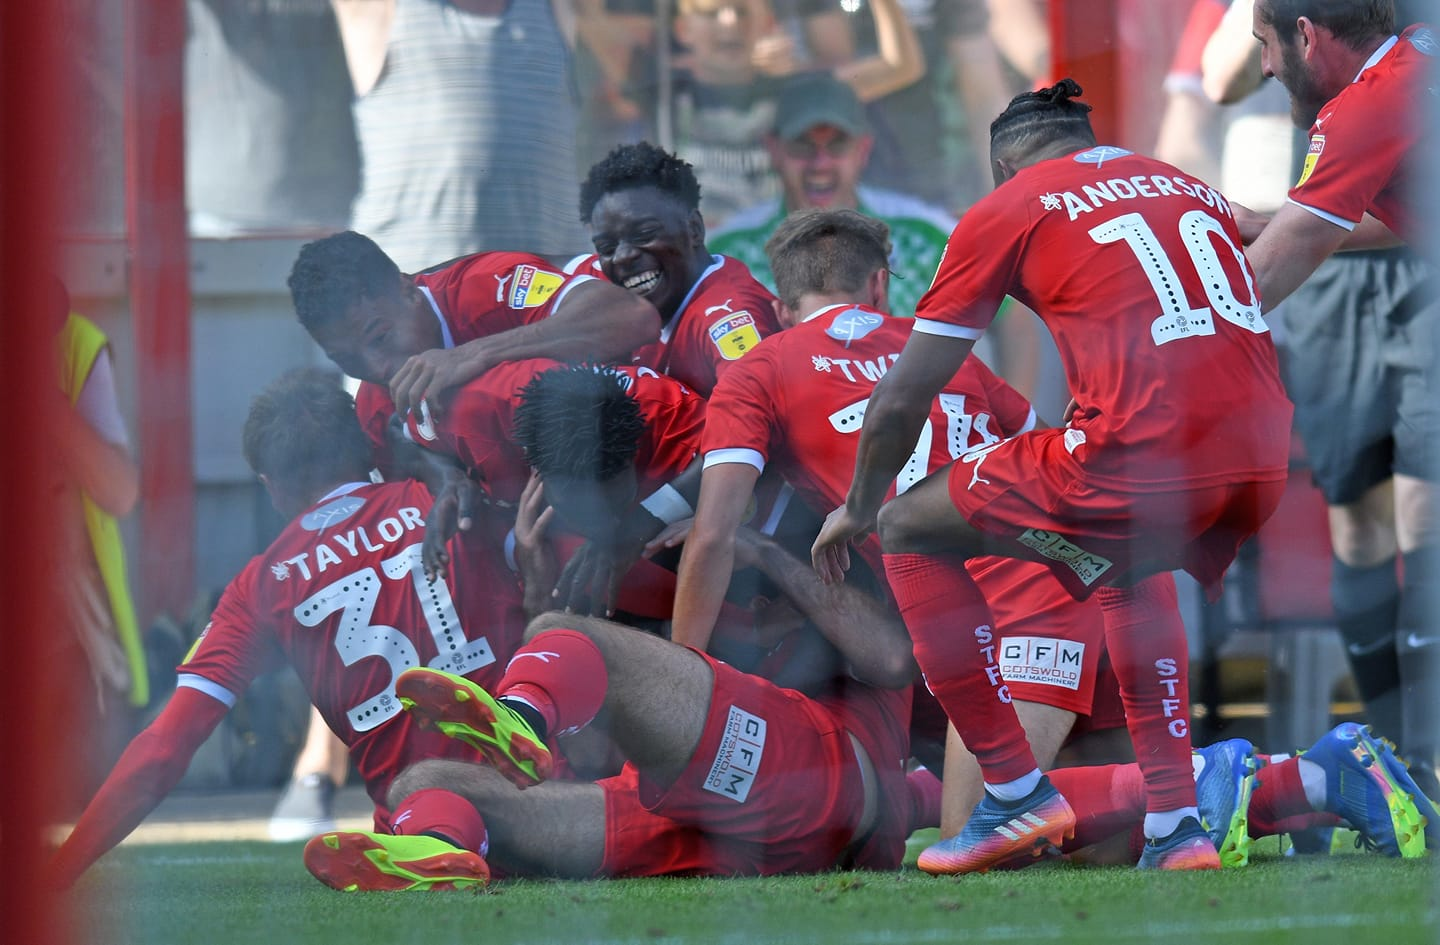 Swindon-Forest Green martedì 14 agosto